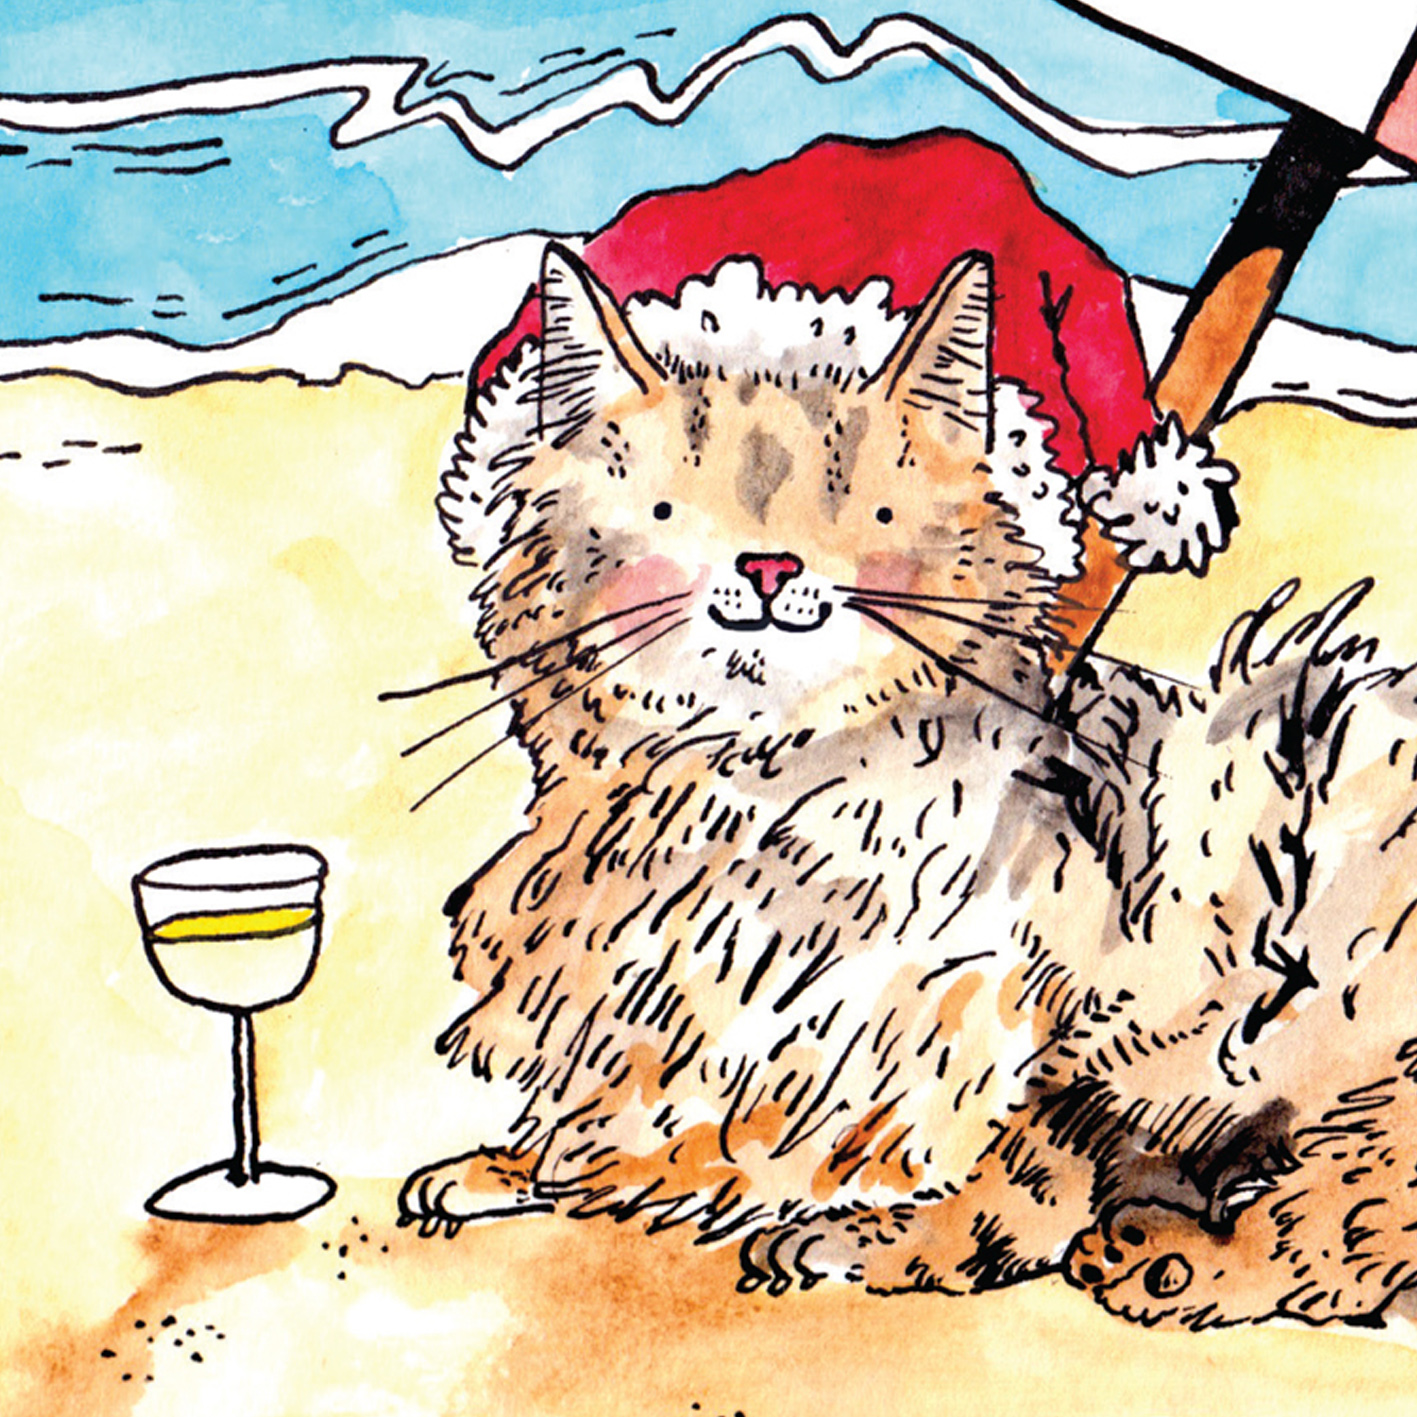 Sandy-Claws_Beach-themed-Christmas-card-with-cat-puns.-Christmas-cards-for-cat-owners_CH03_CU